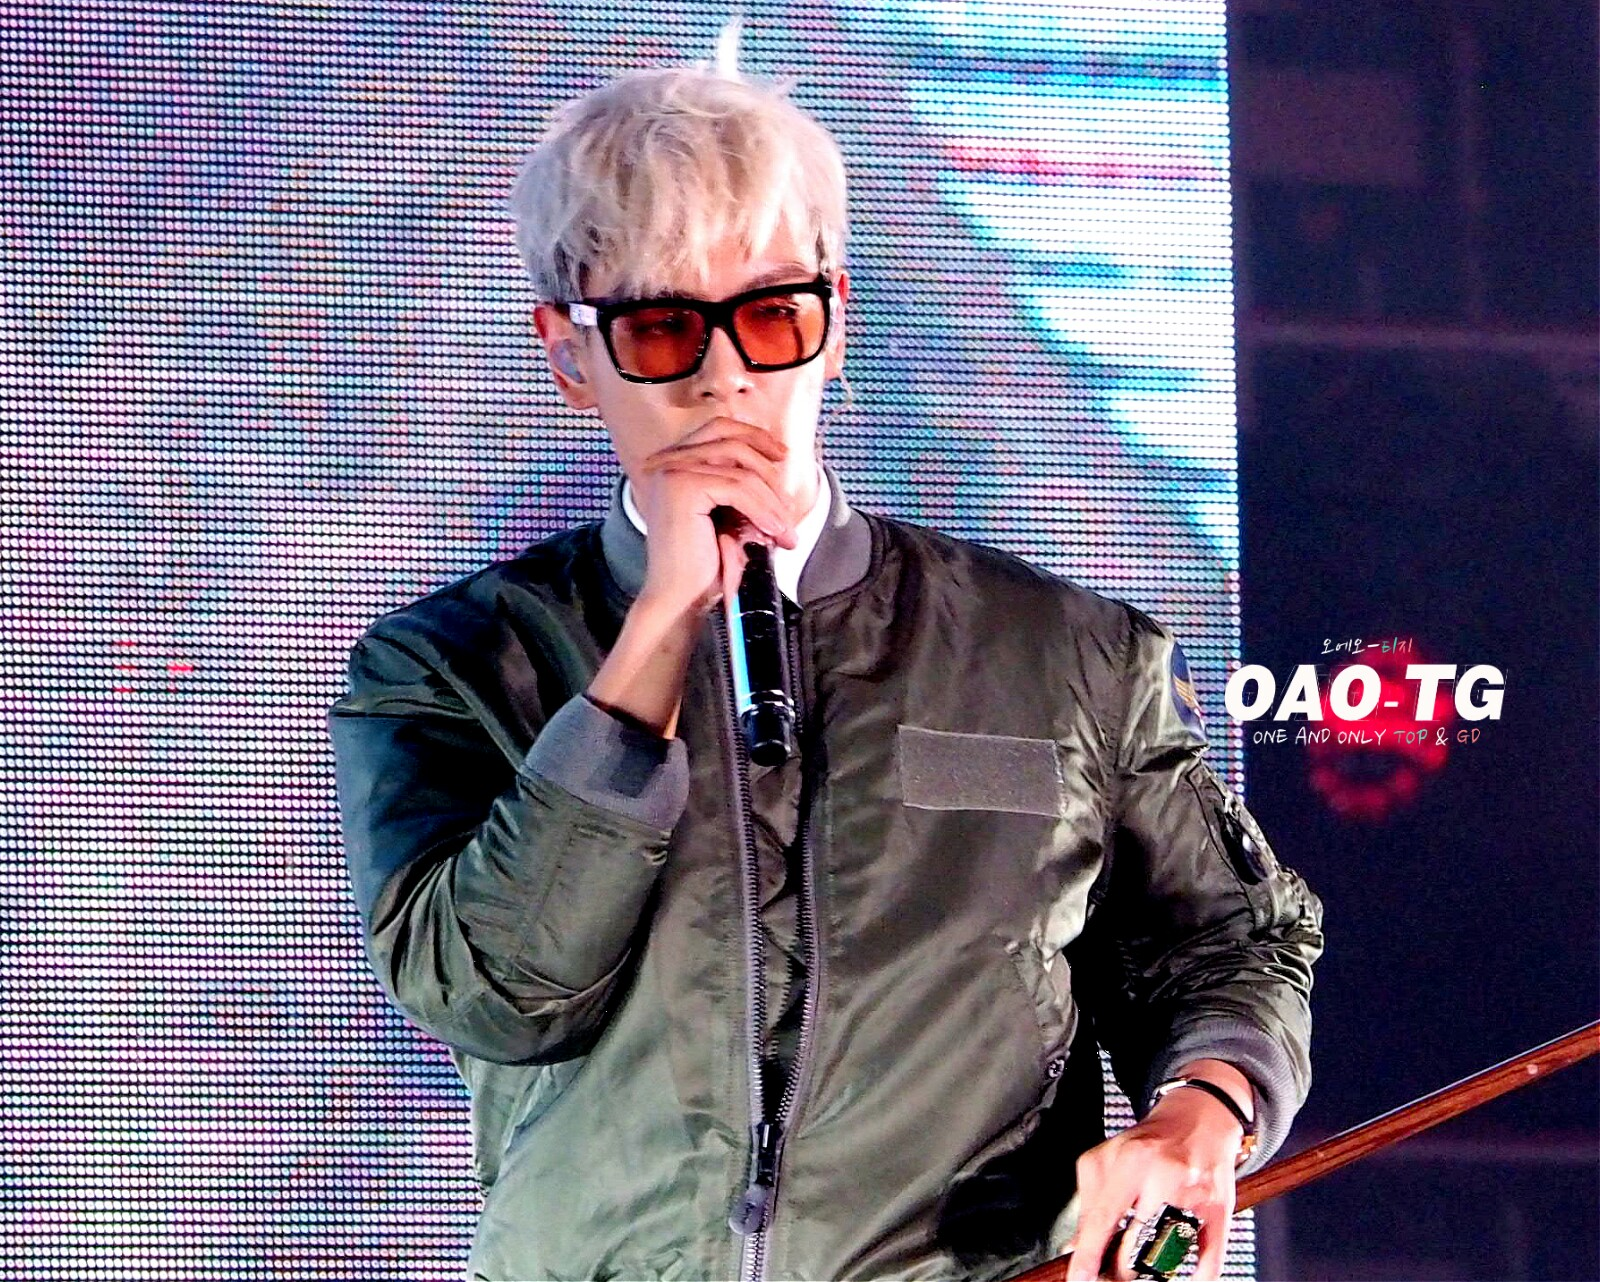 Big Bang - Made Tour 2015 - Changsha - 28aug2015 - OAO-TG - 02.jpg